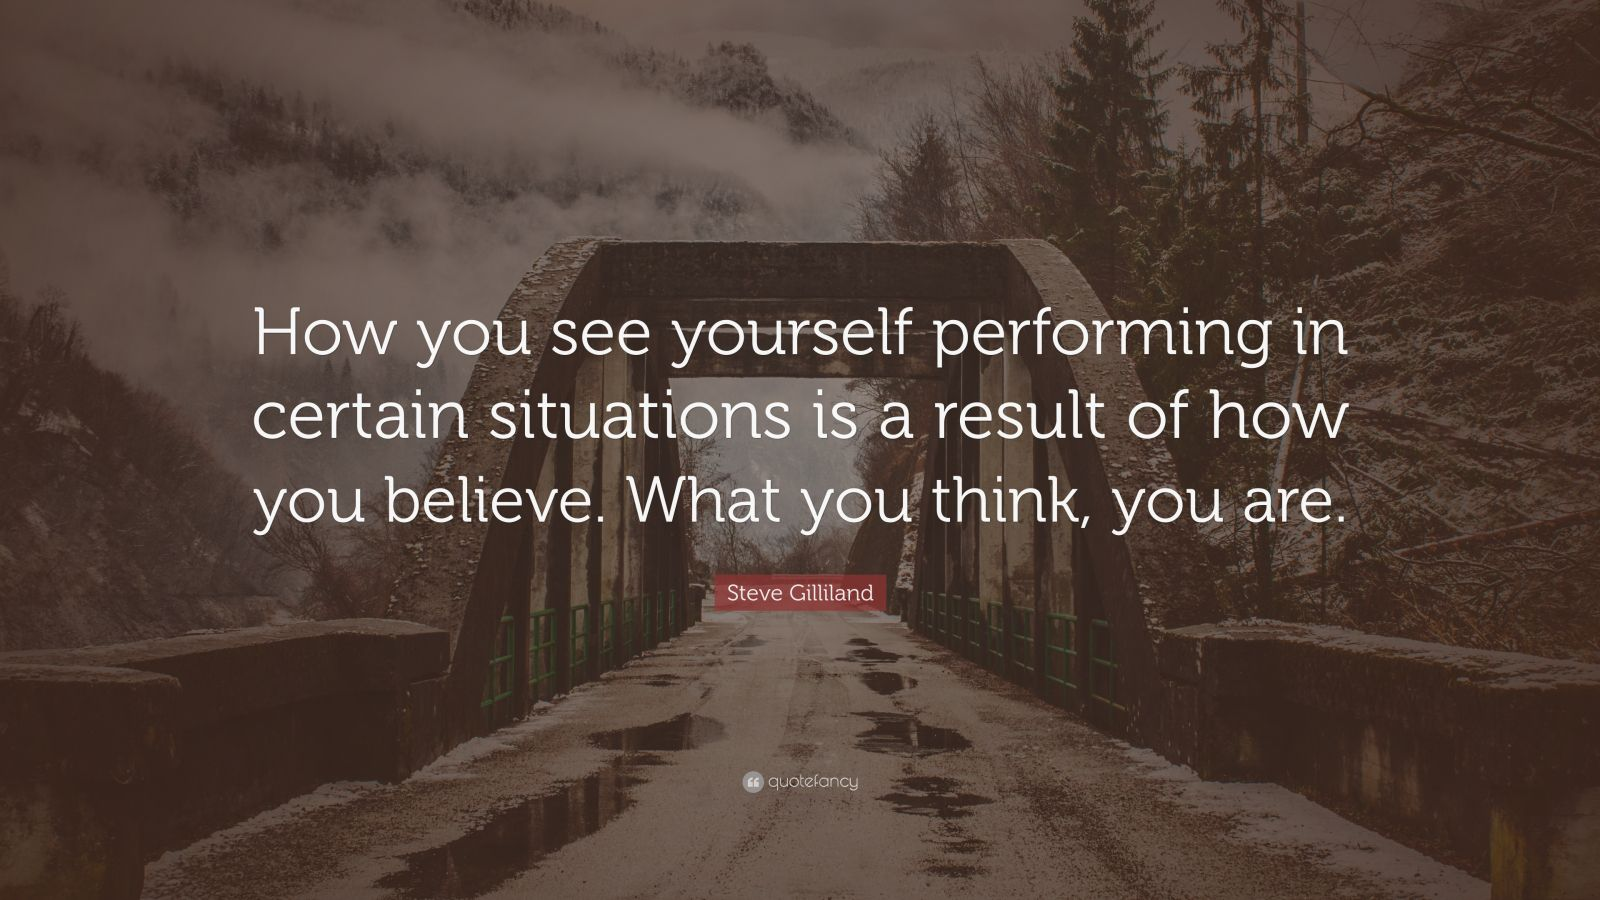 """Steve Gilliland Quote: """"How you see yourself performing in certain situations is a result of how you believe. What you think, you are."""""""